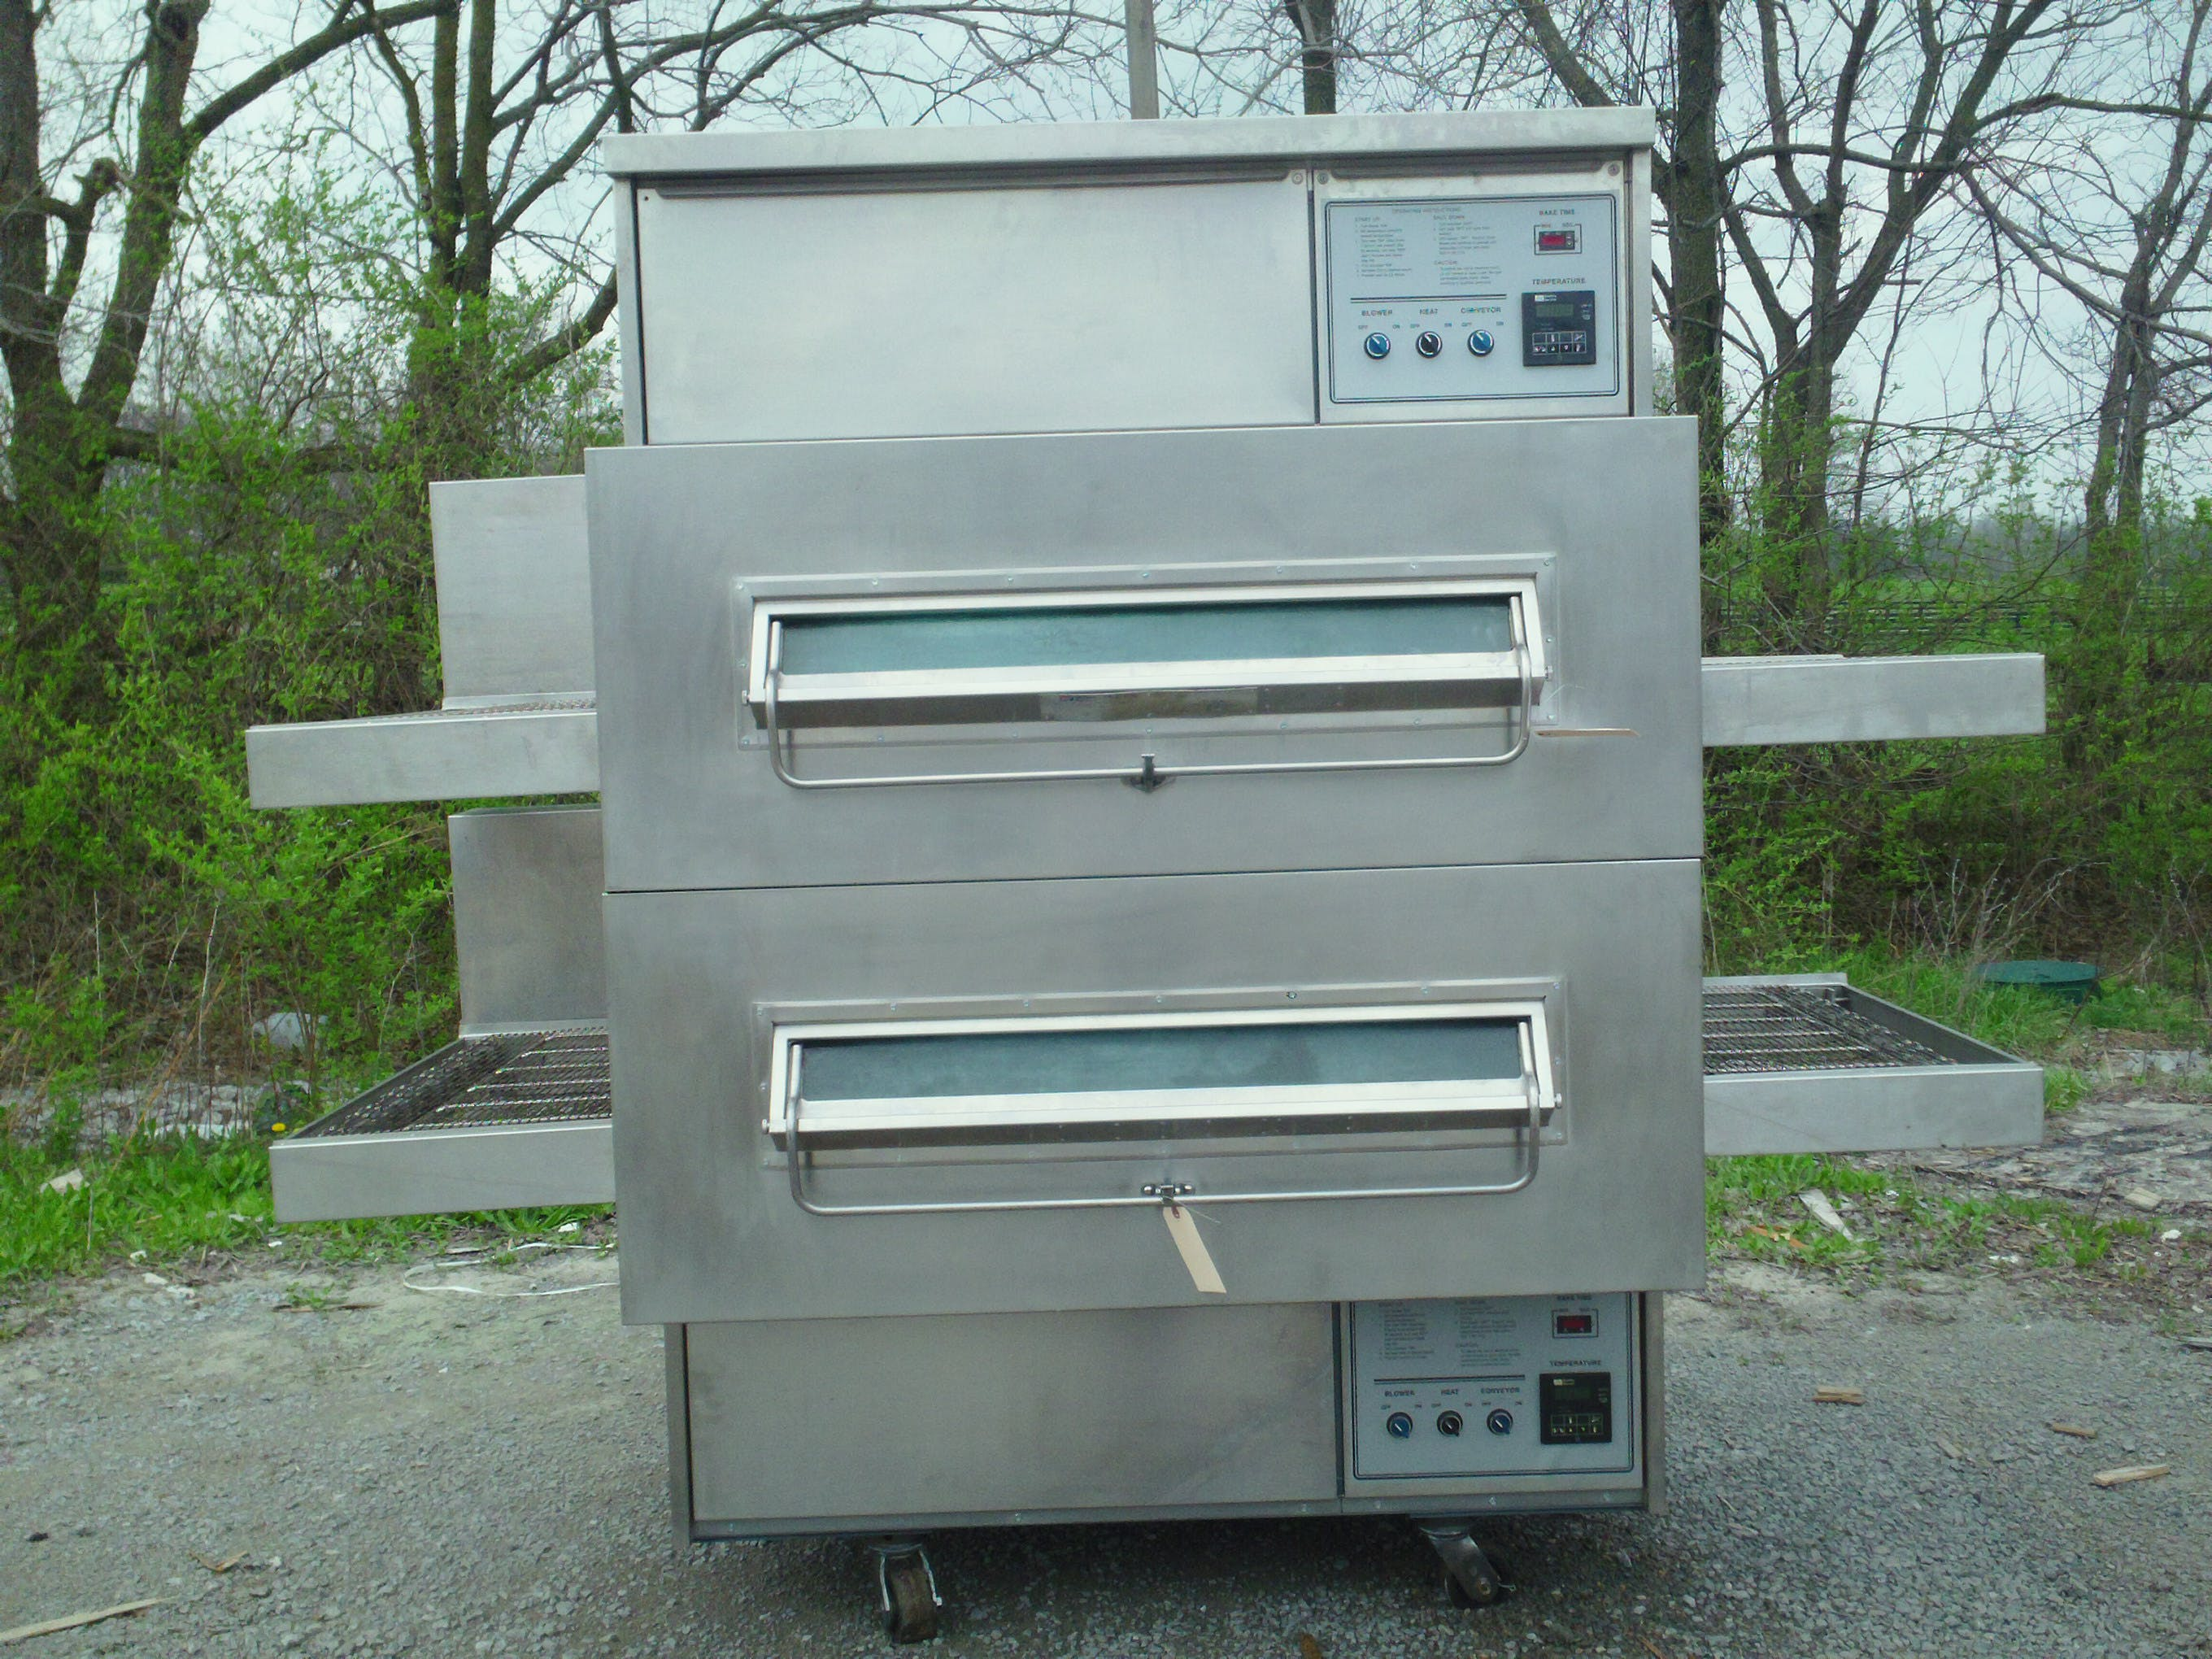 Pre-Owned Middleby Marshall PS-360 Gas Conveyor Ovens Pizza oven sold by pizzaovens.com